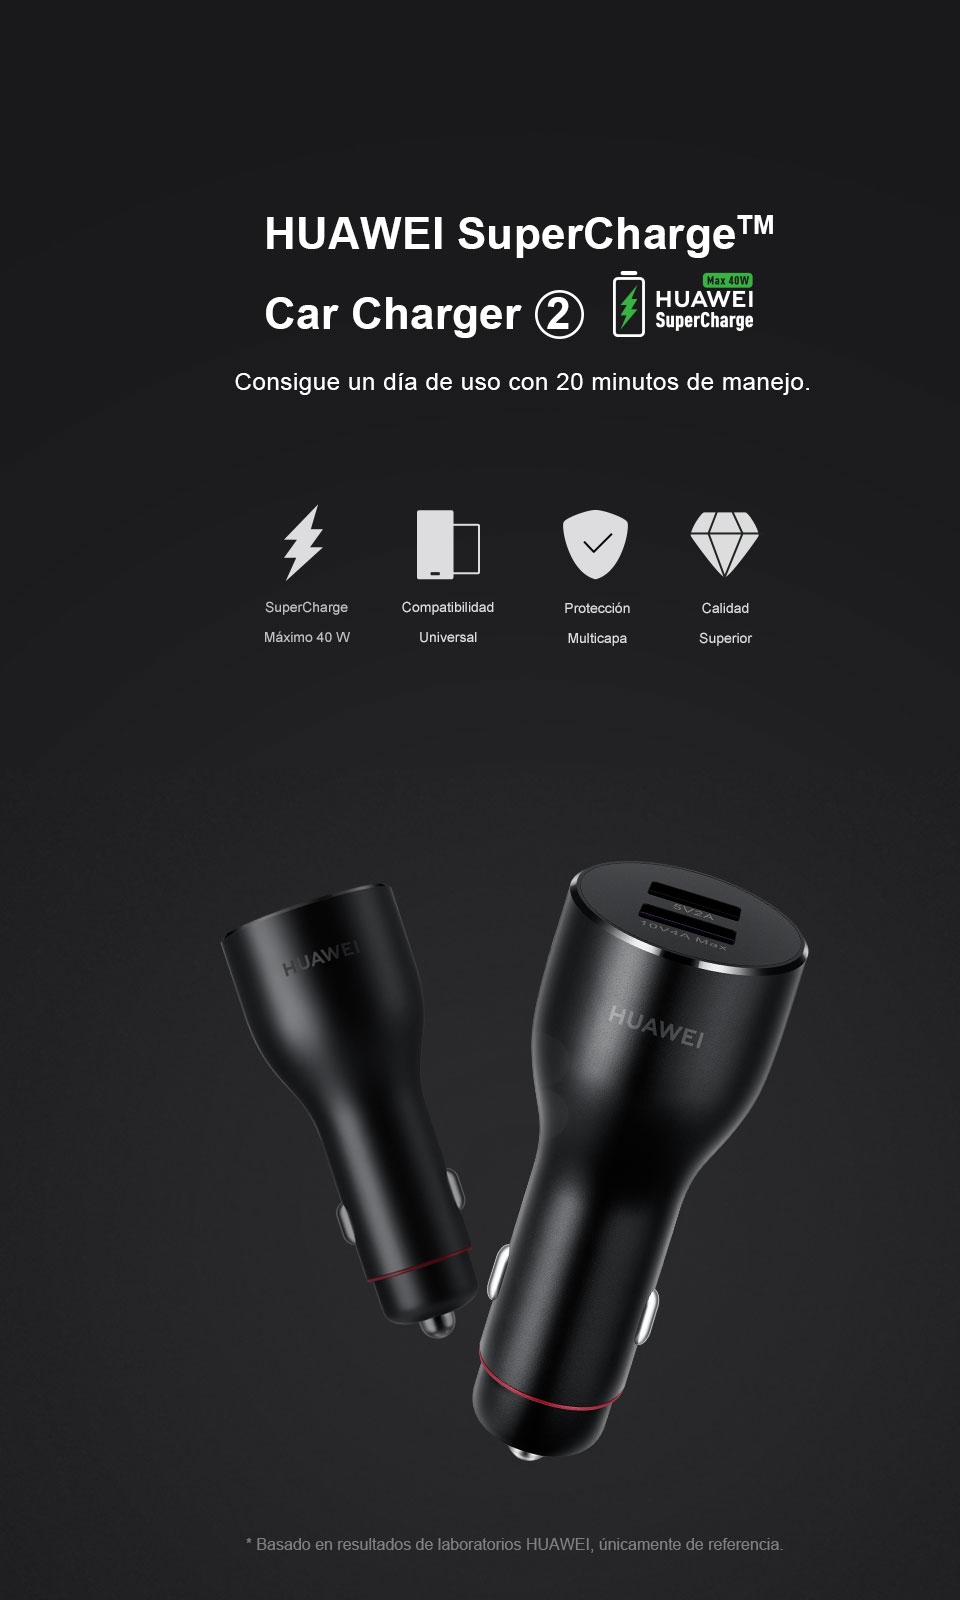 HUAWEI SuperCharge™ Car Charger 2